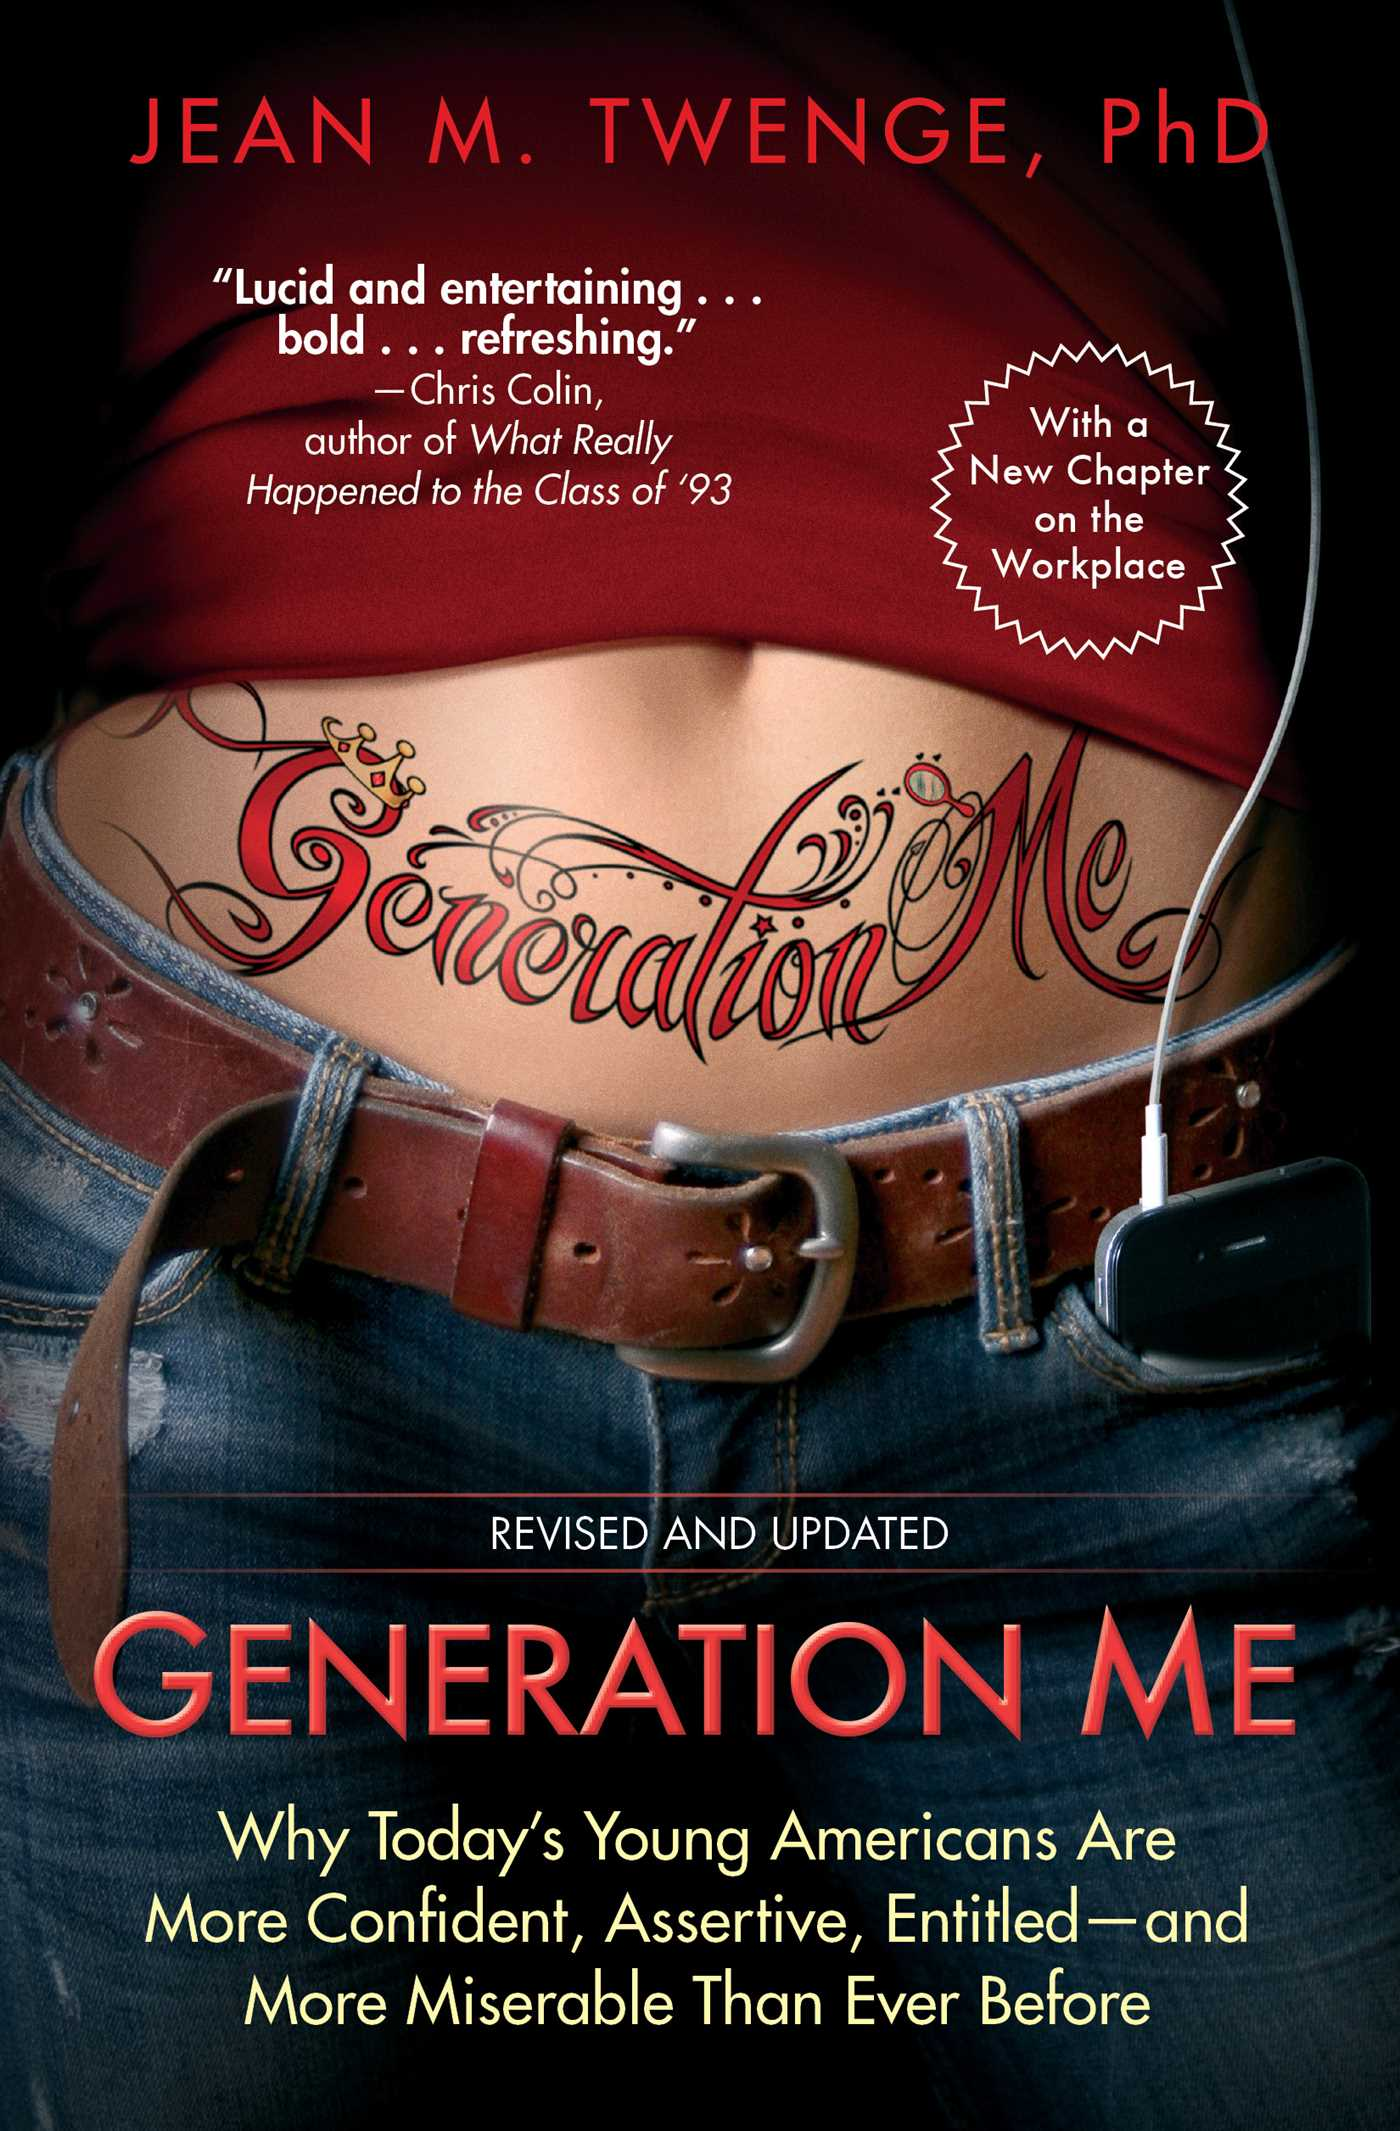 Generation me revised and updated 9781476755564 hr